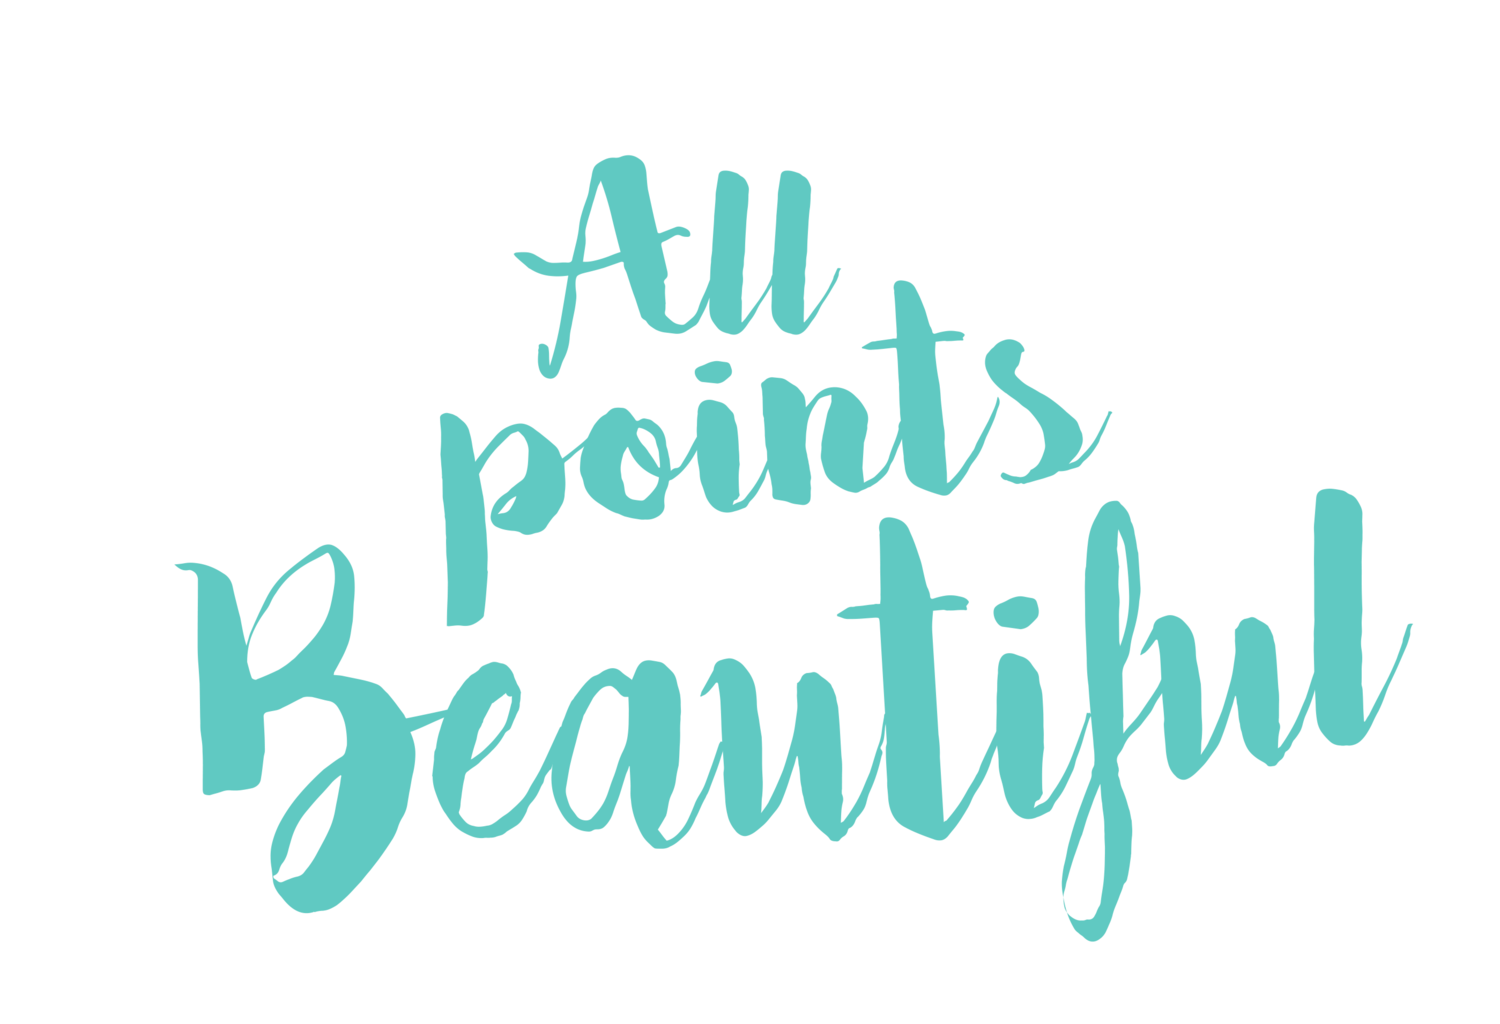 All Points Beautiful